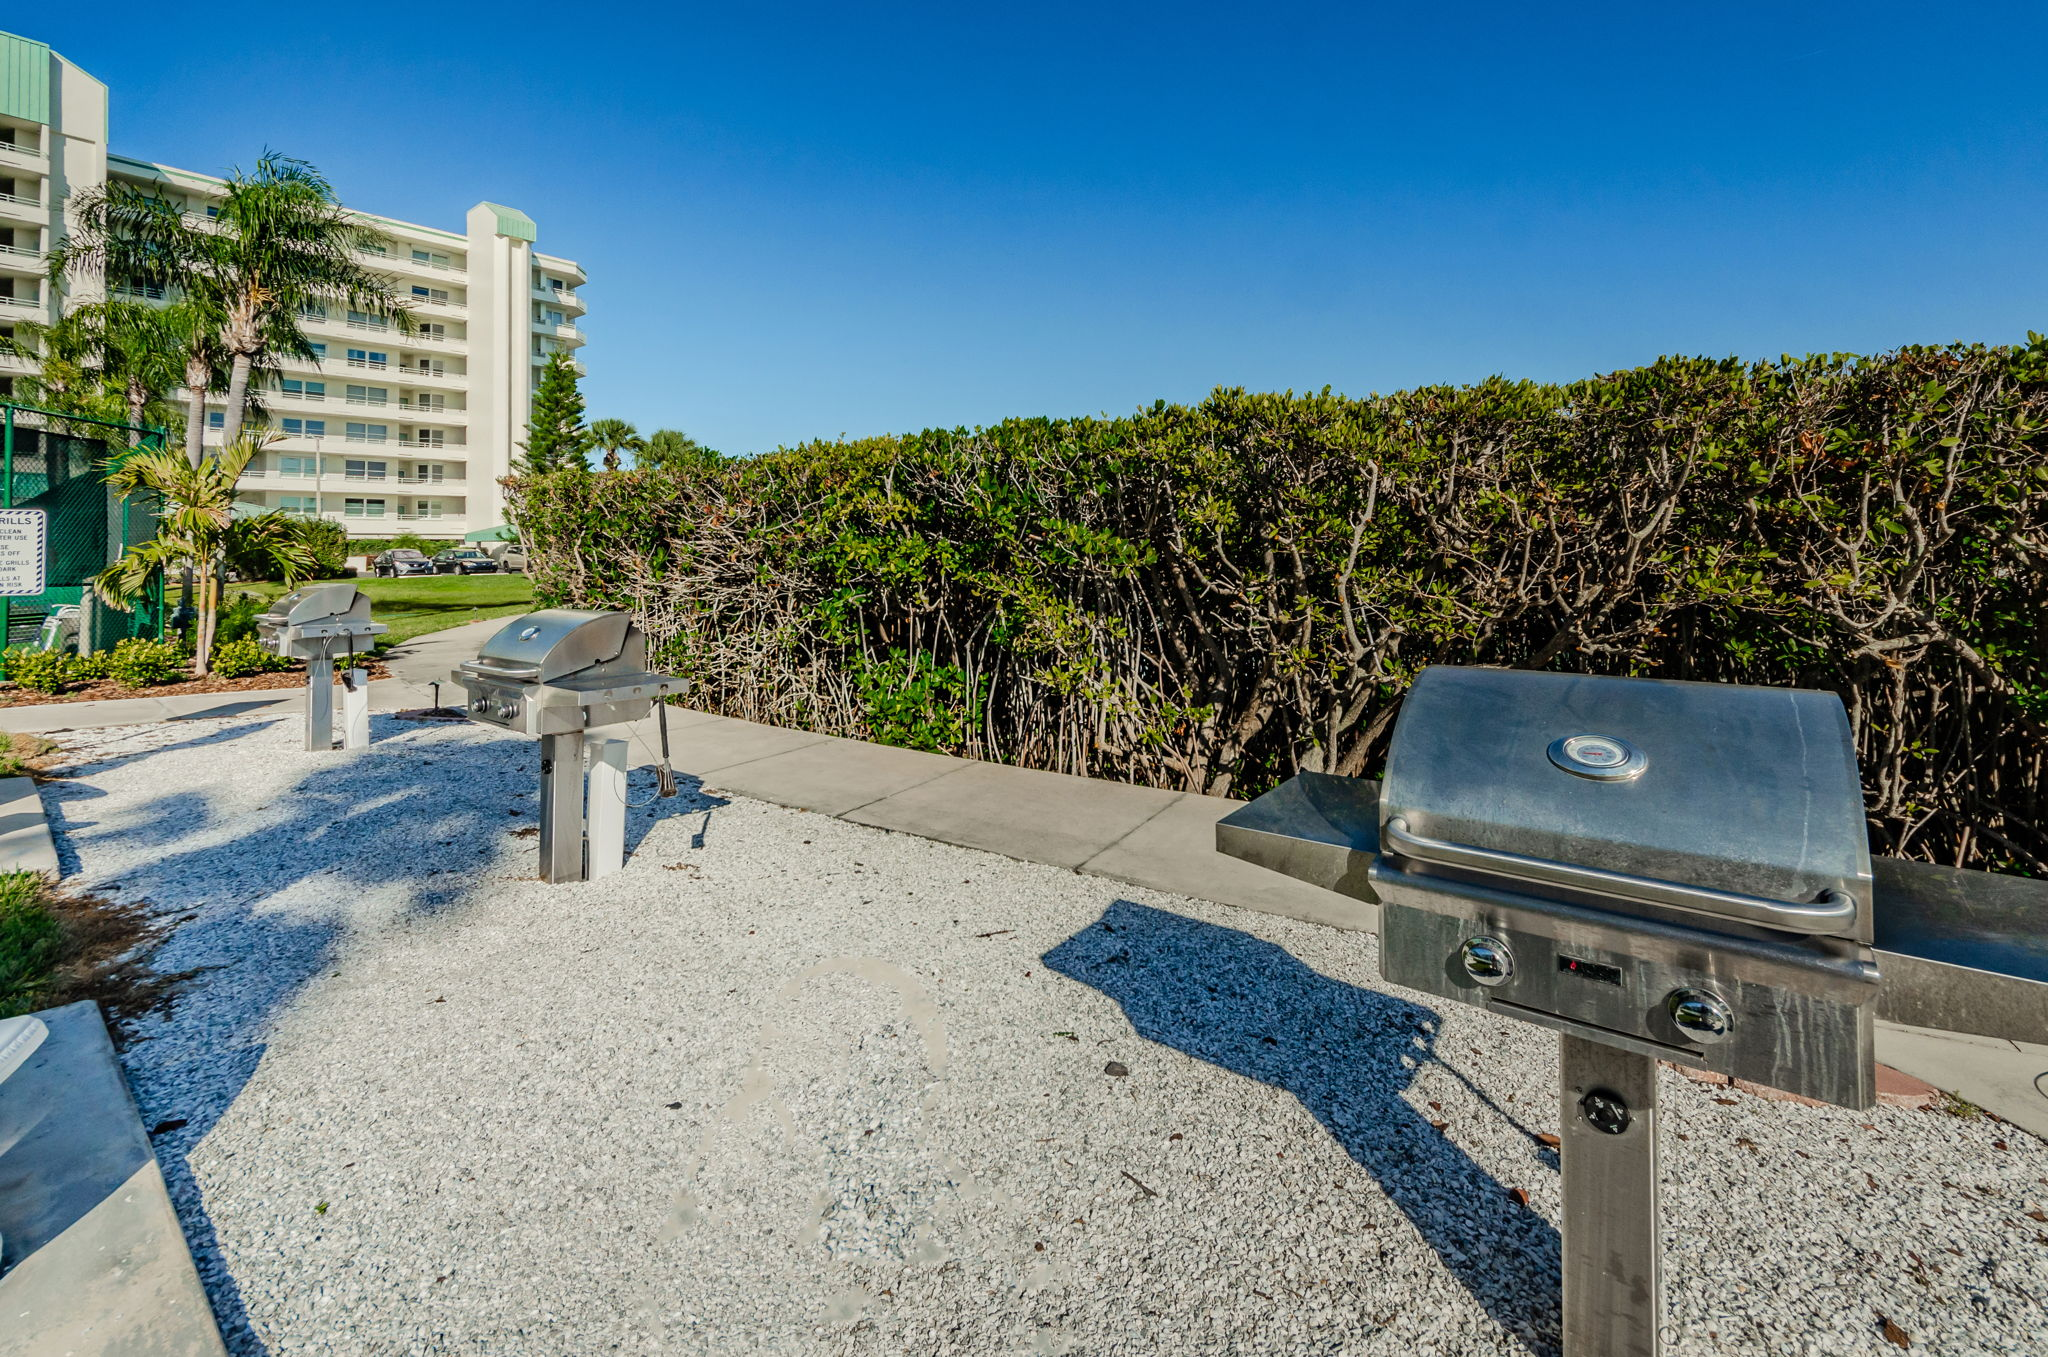 Grilling Area2